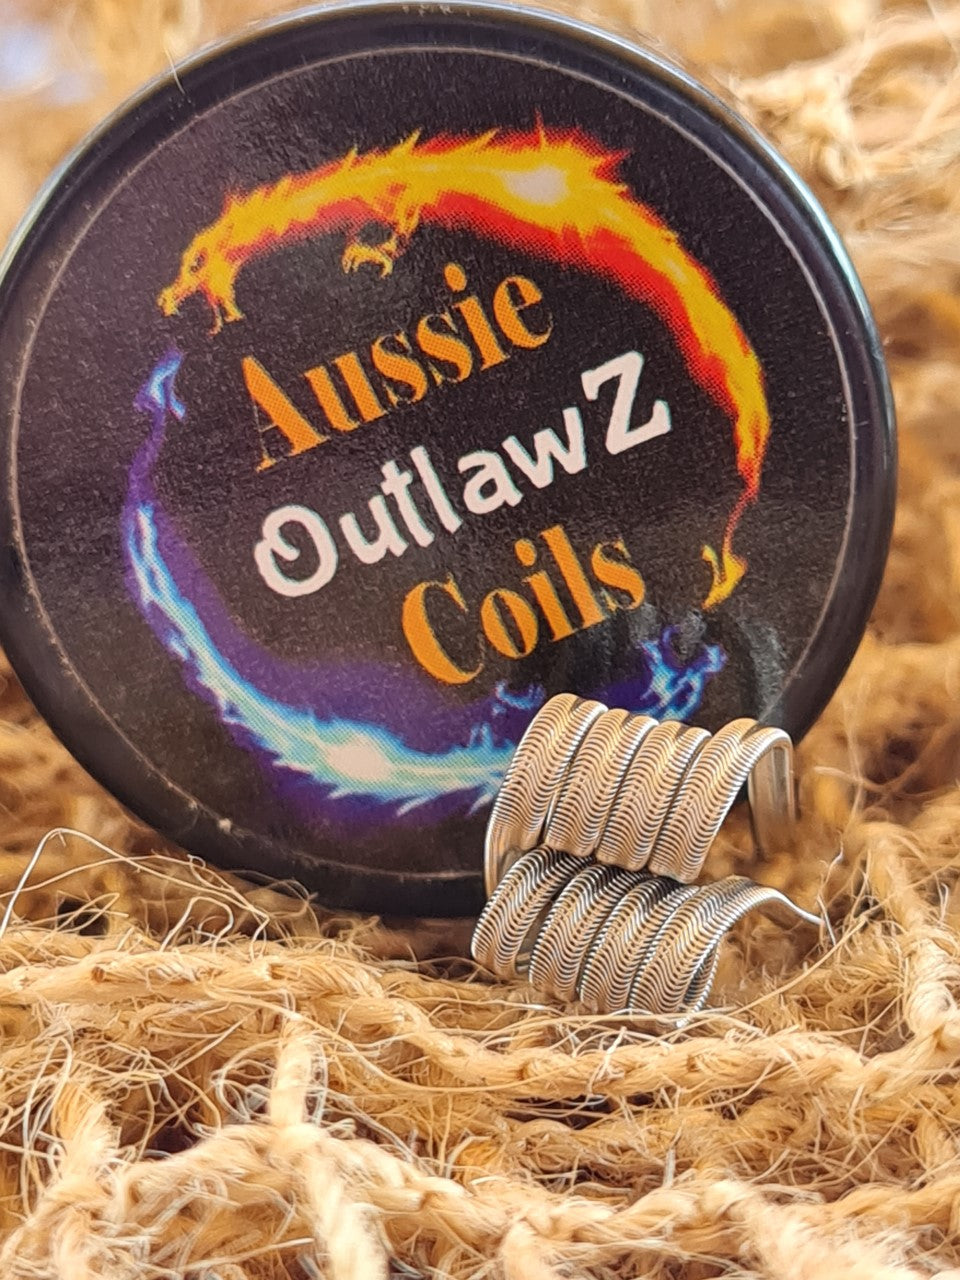 Aussie Coils -  Outlawz -  Set of x2 Coils